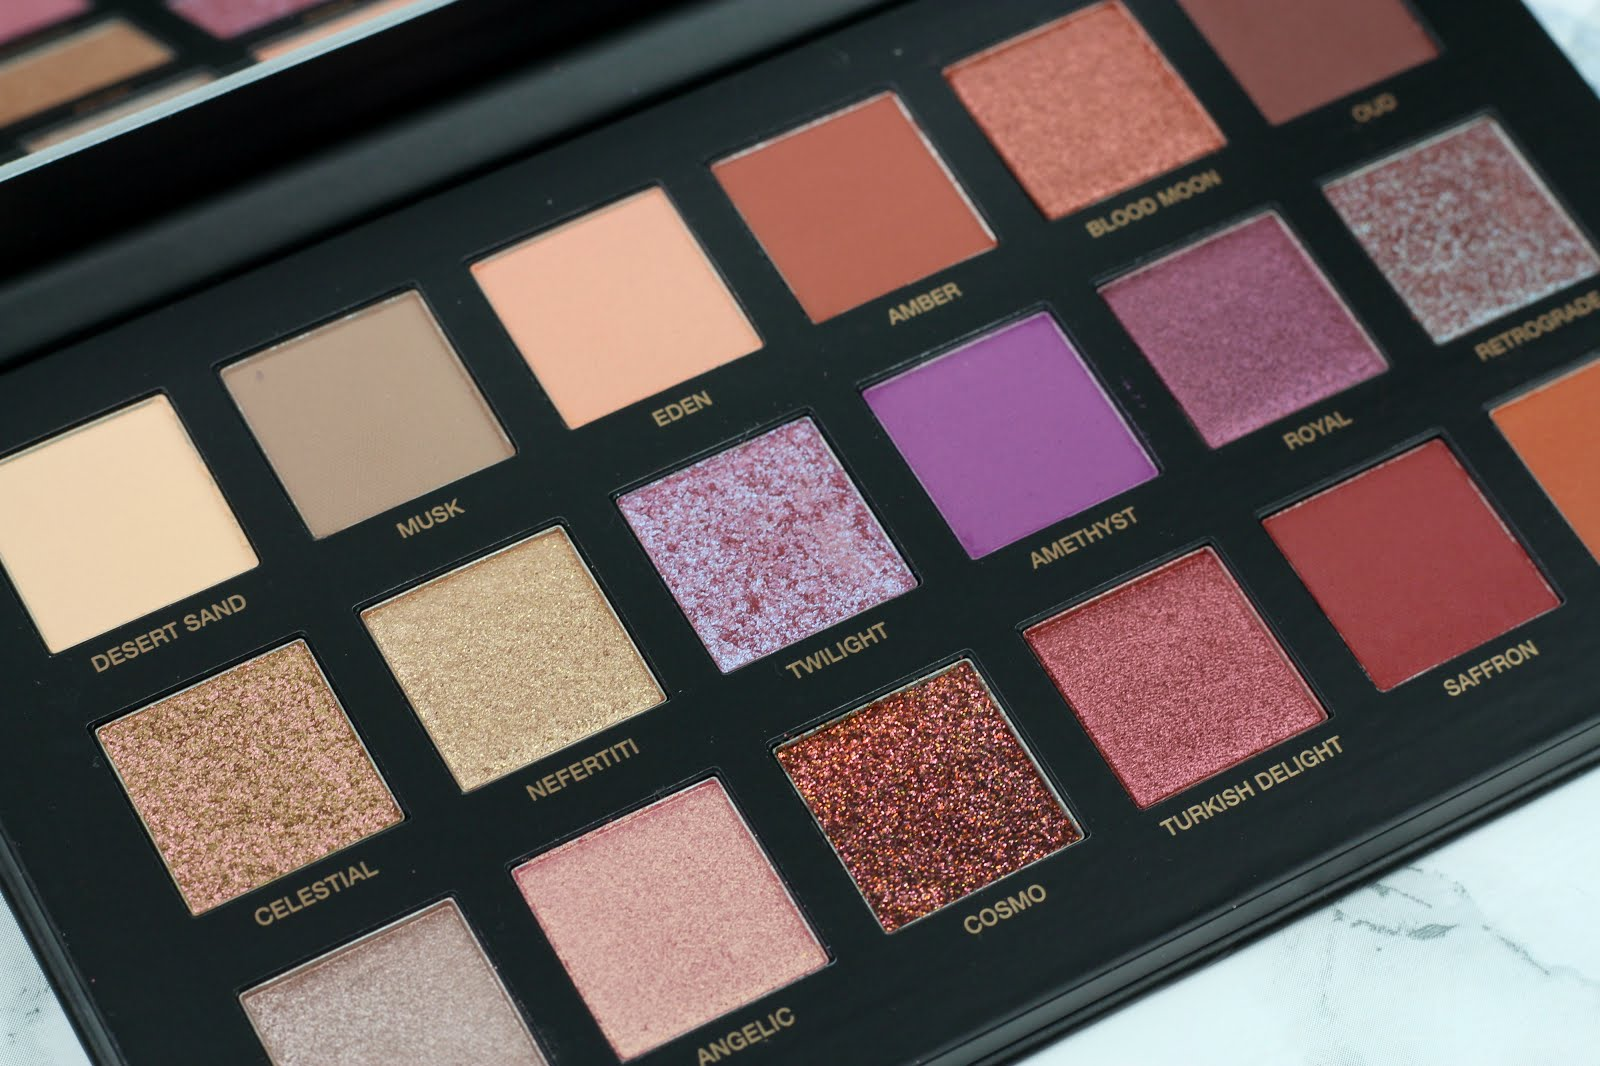 huda, huda beauty, huda palette, huda beauty palette, huda desert dusk, huda beauty desert dusk, huda beauty desert dusk palette, palette, desert dusk, huda desert dusk review, huda desert dusk swatch, nelly ray, nelly ray blog, blogger, german blogger, deutsche beauty blogger